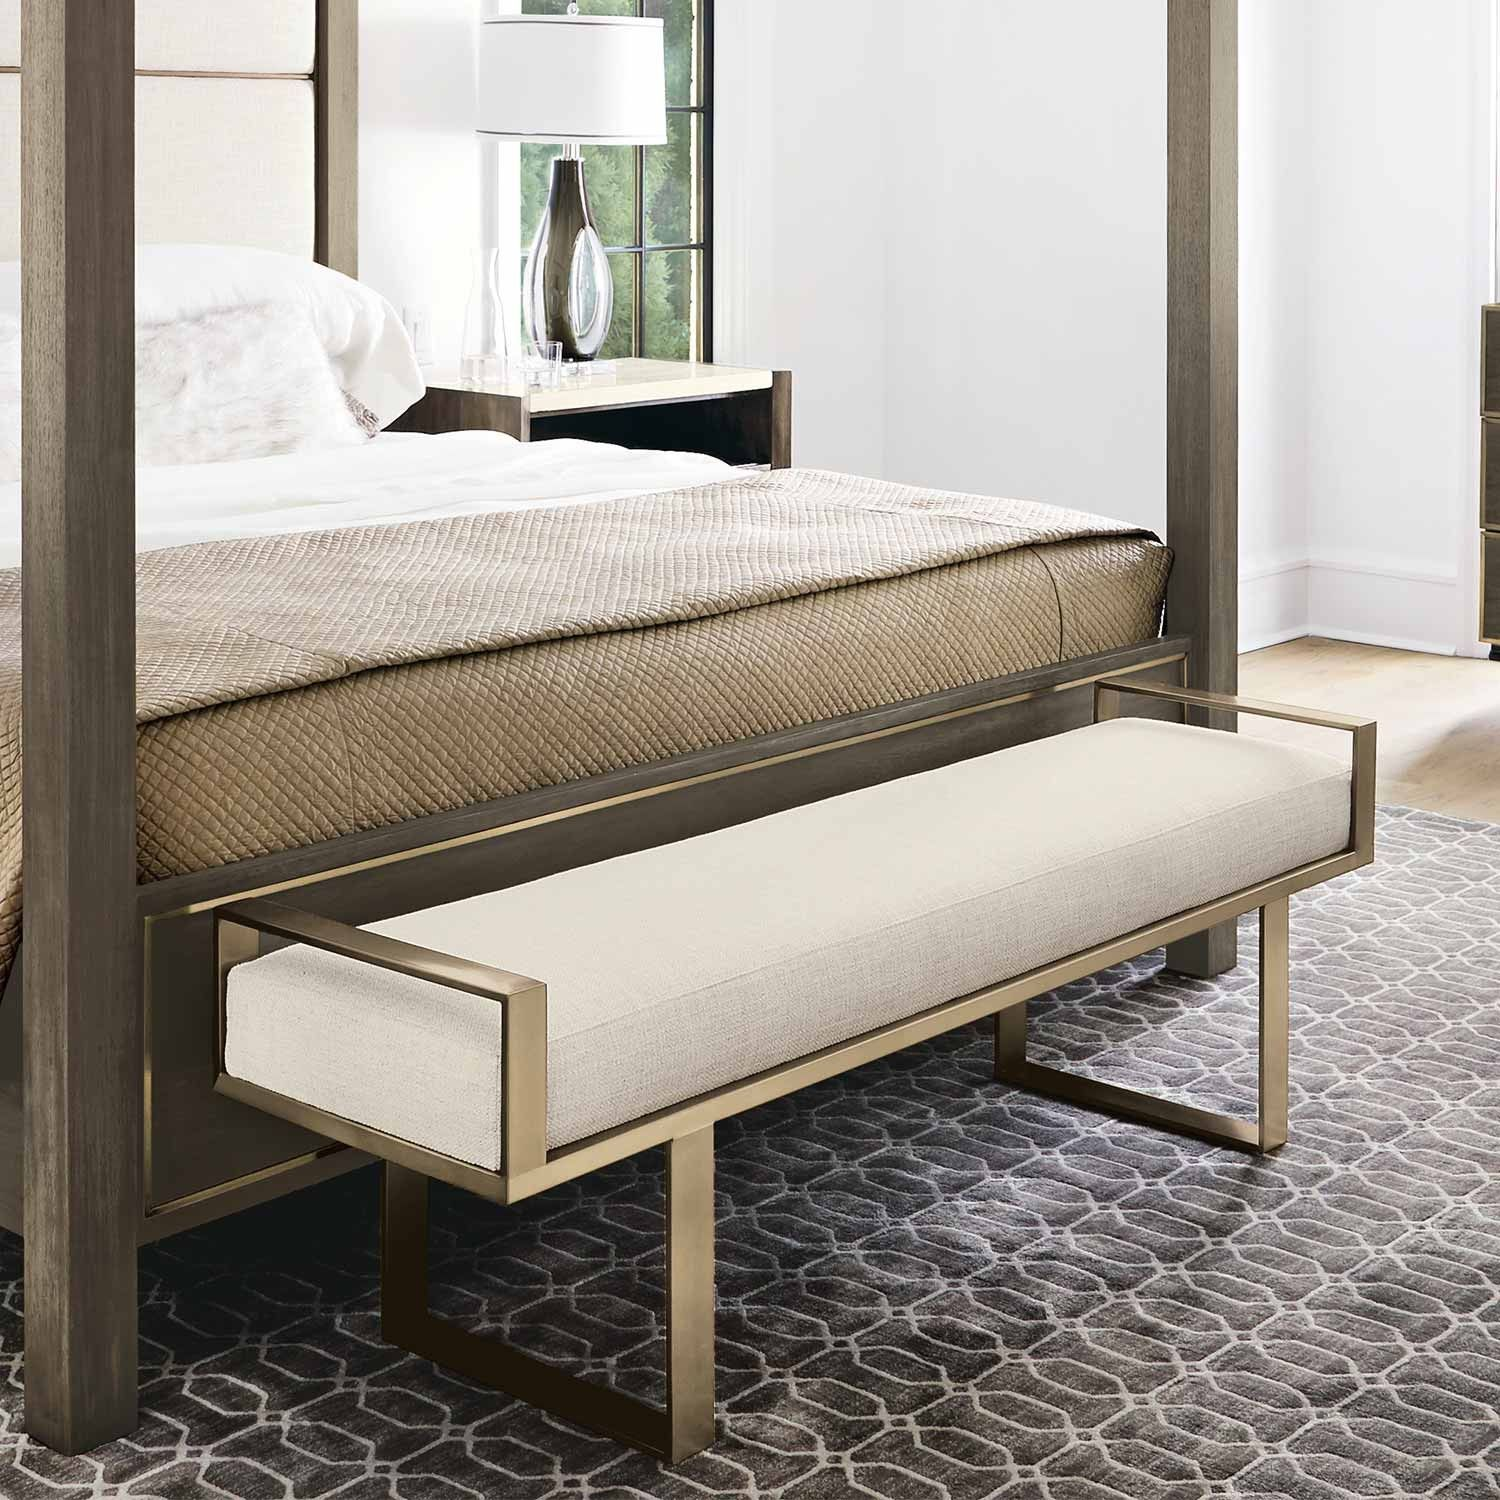 Profile Stainless Steel Fabric Upholstered Bed Bench In Tapestry